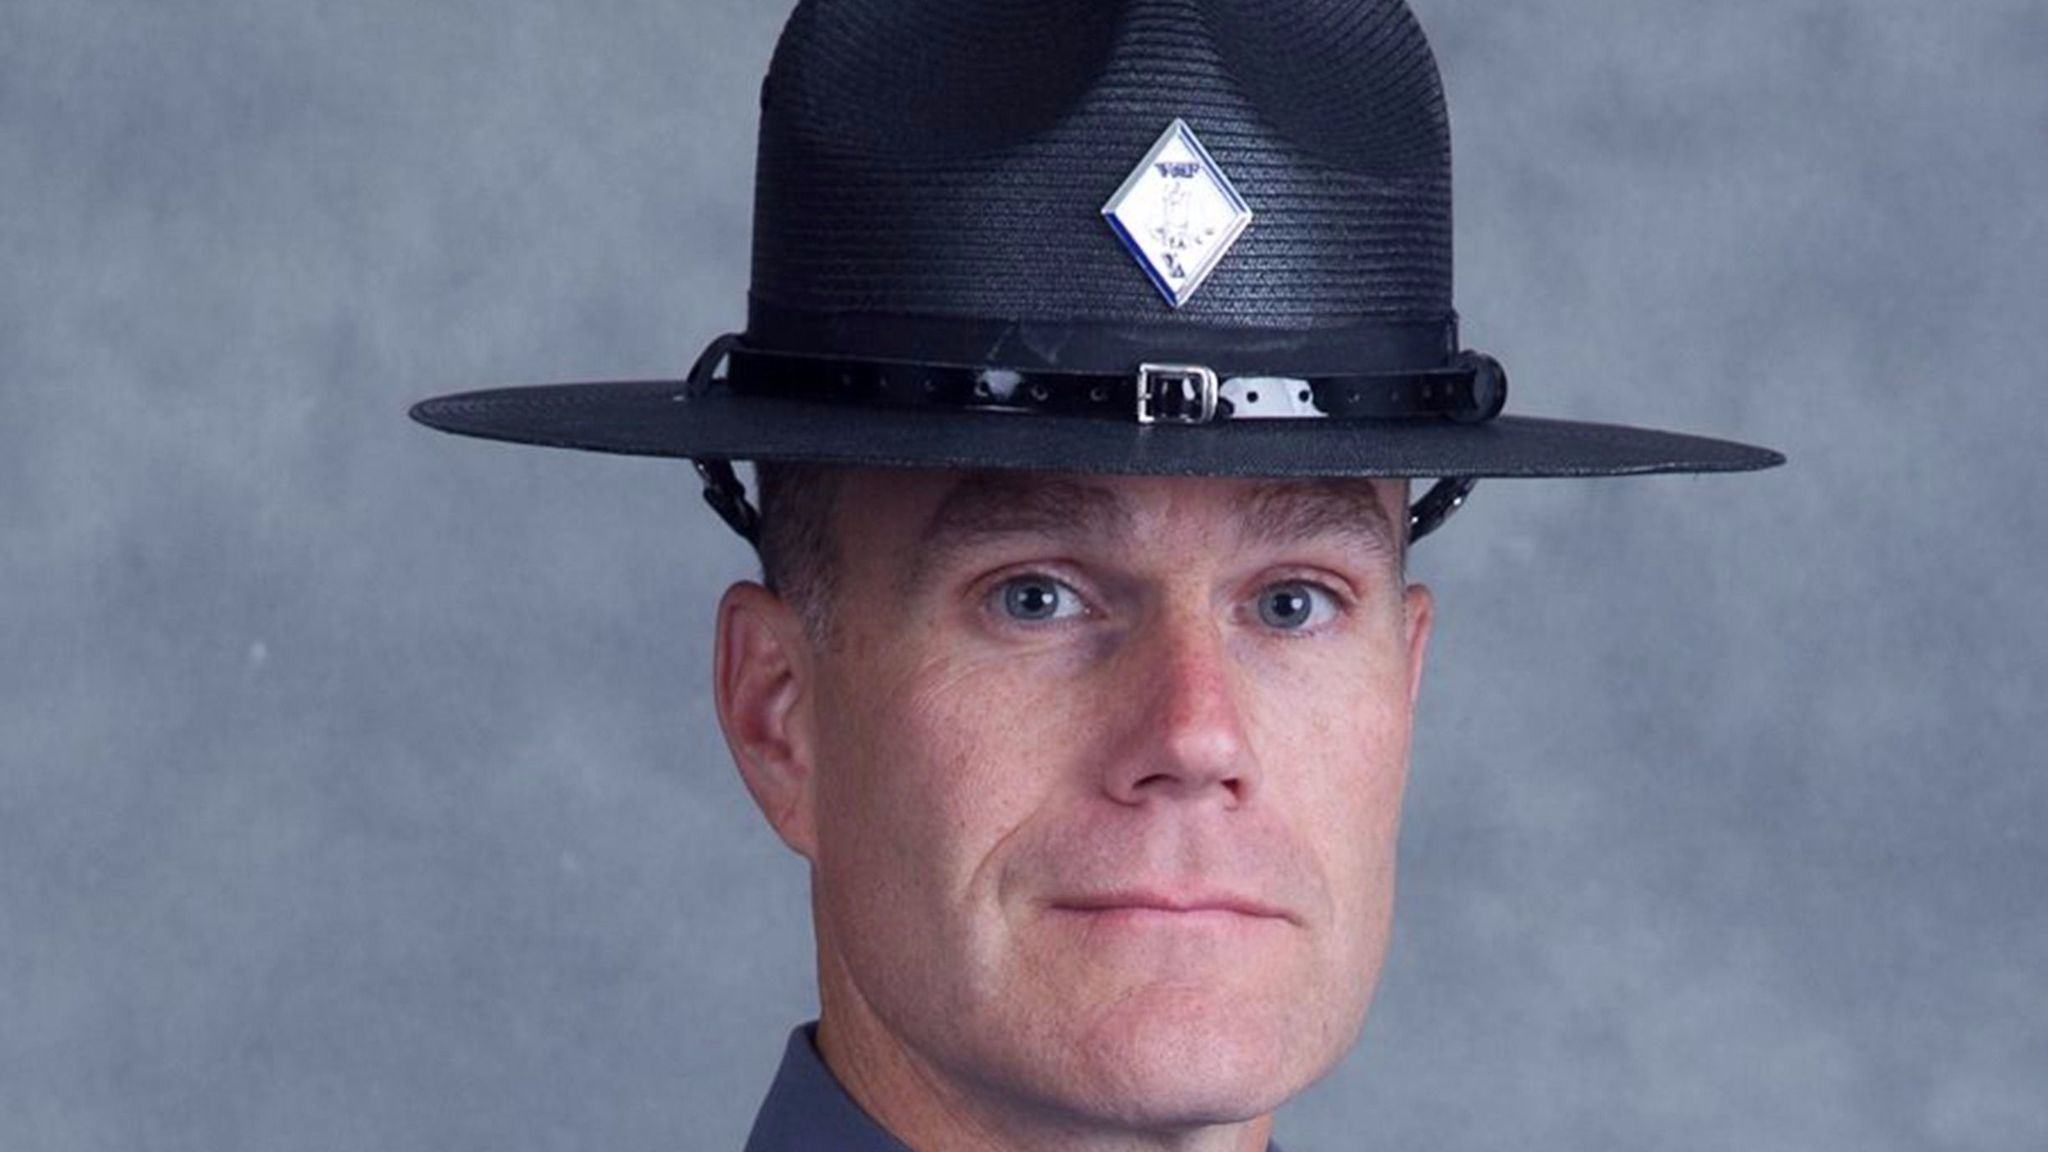 Lt. H. Jay Cullen poses for his official photo. Cullen and Trooper-Pilot Berke M.M. Bates were killed when their helicopter crashed while assisting during the protests in Charlottesville, Va.,